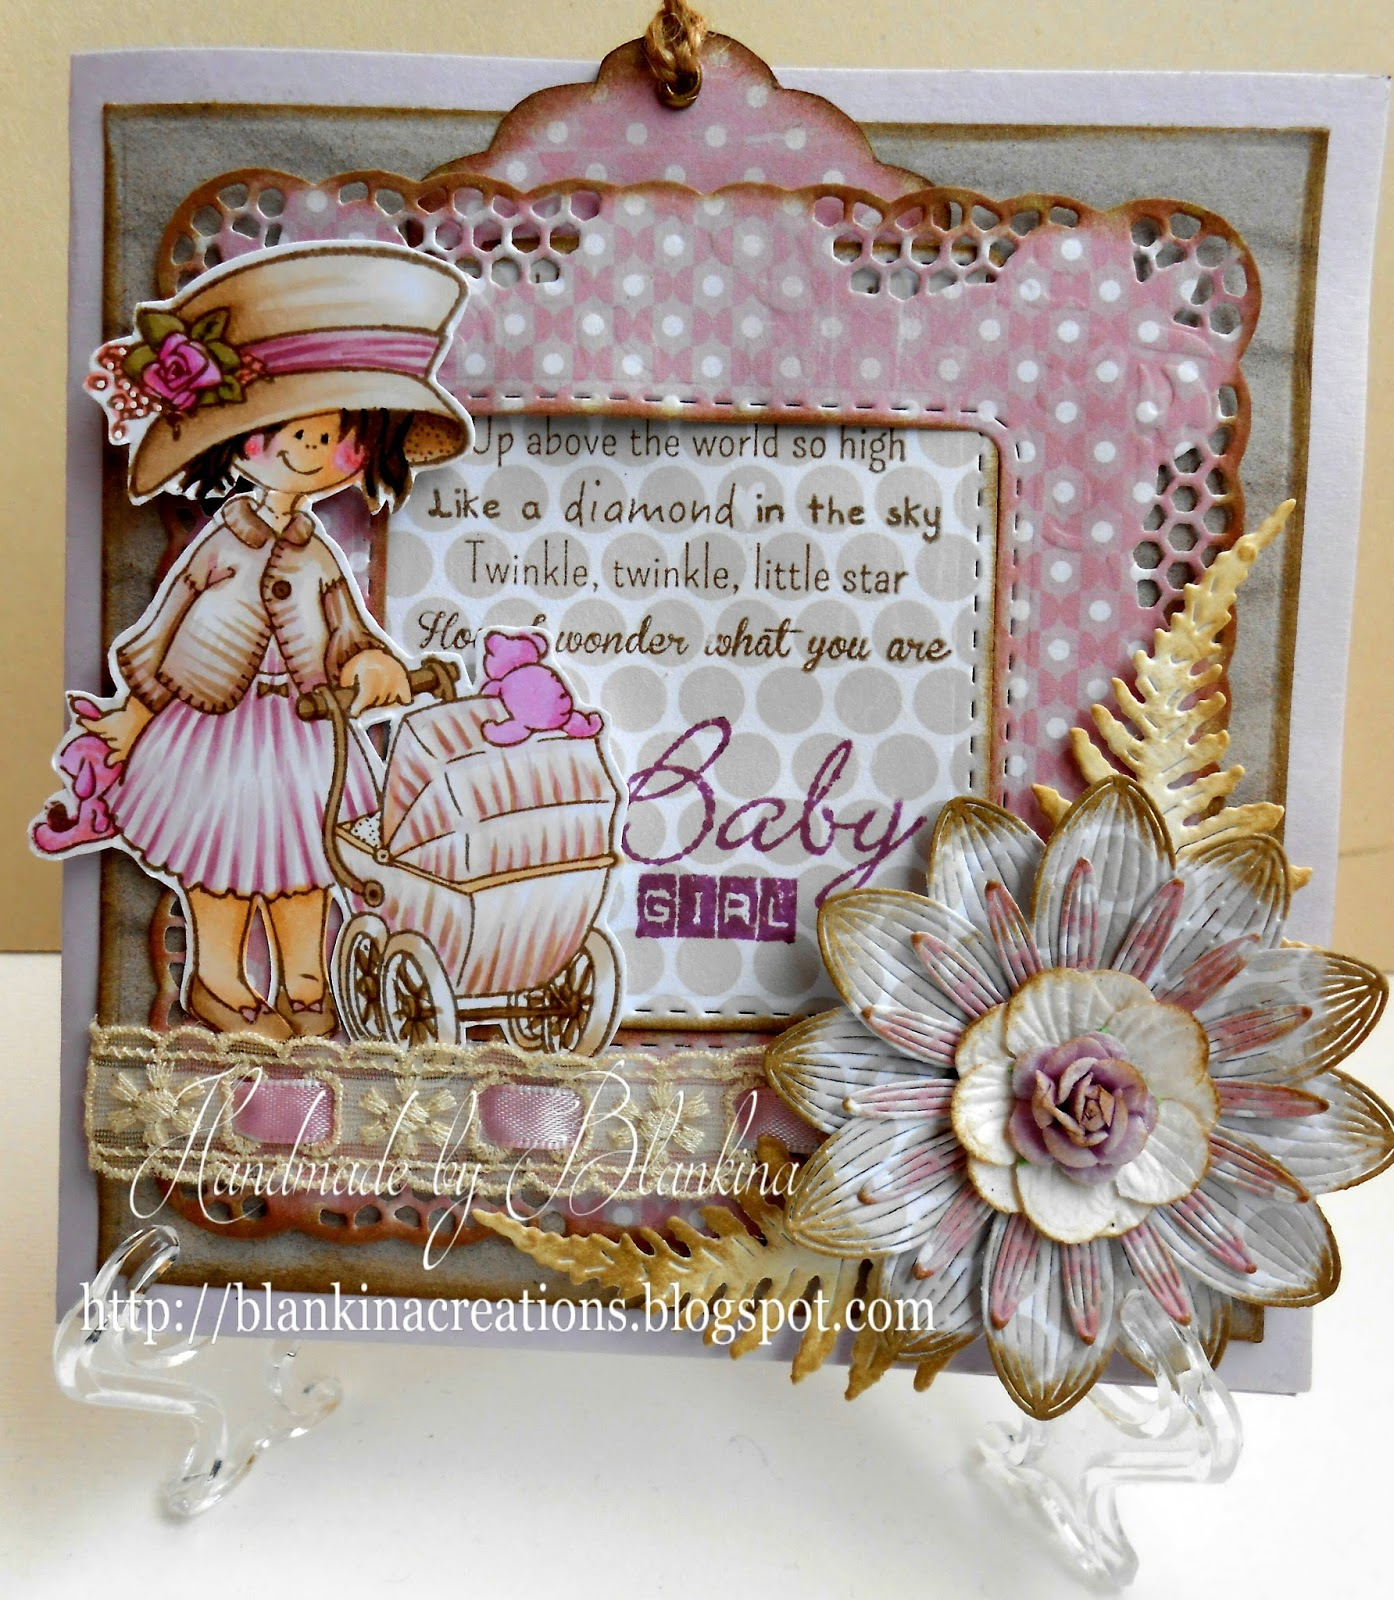 Marianne S Design Divas Challenge 5 Anything Goes With